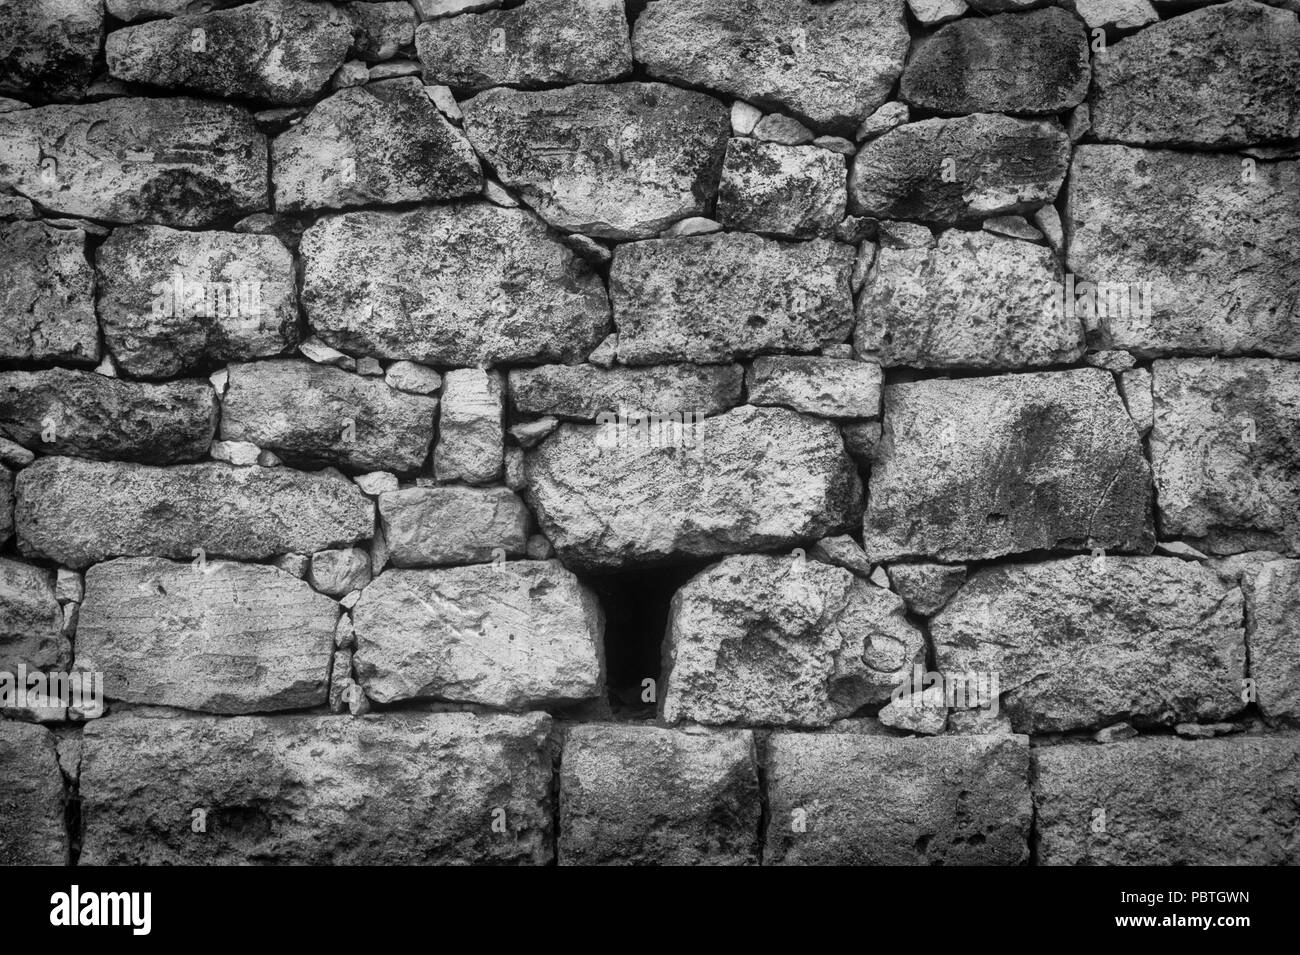 Old rustic stone wall in black and white with varied and sizes and textures - Stock Image